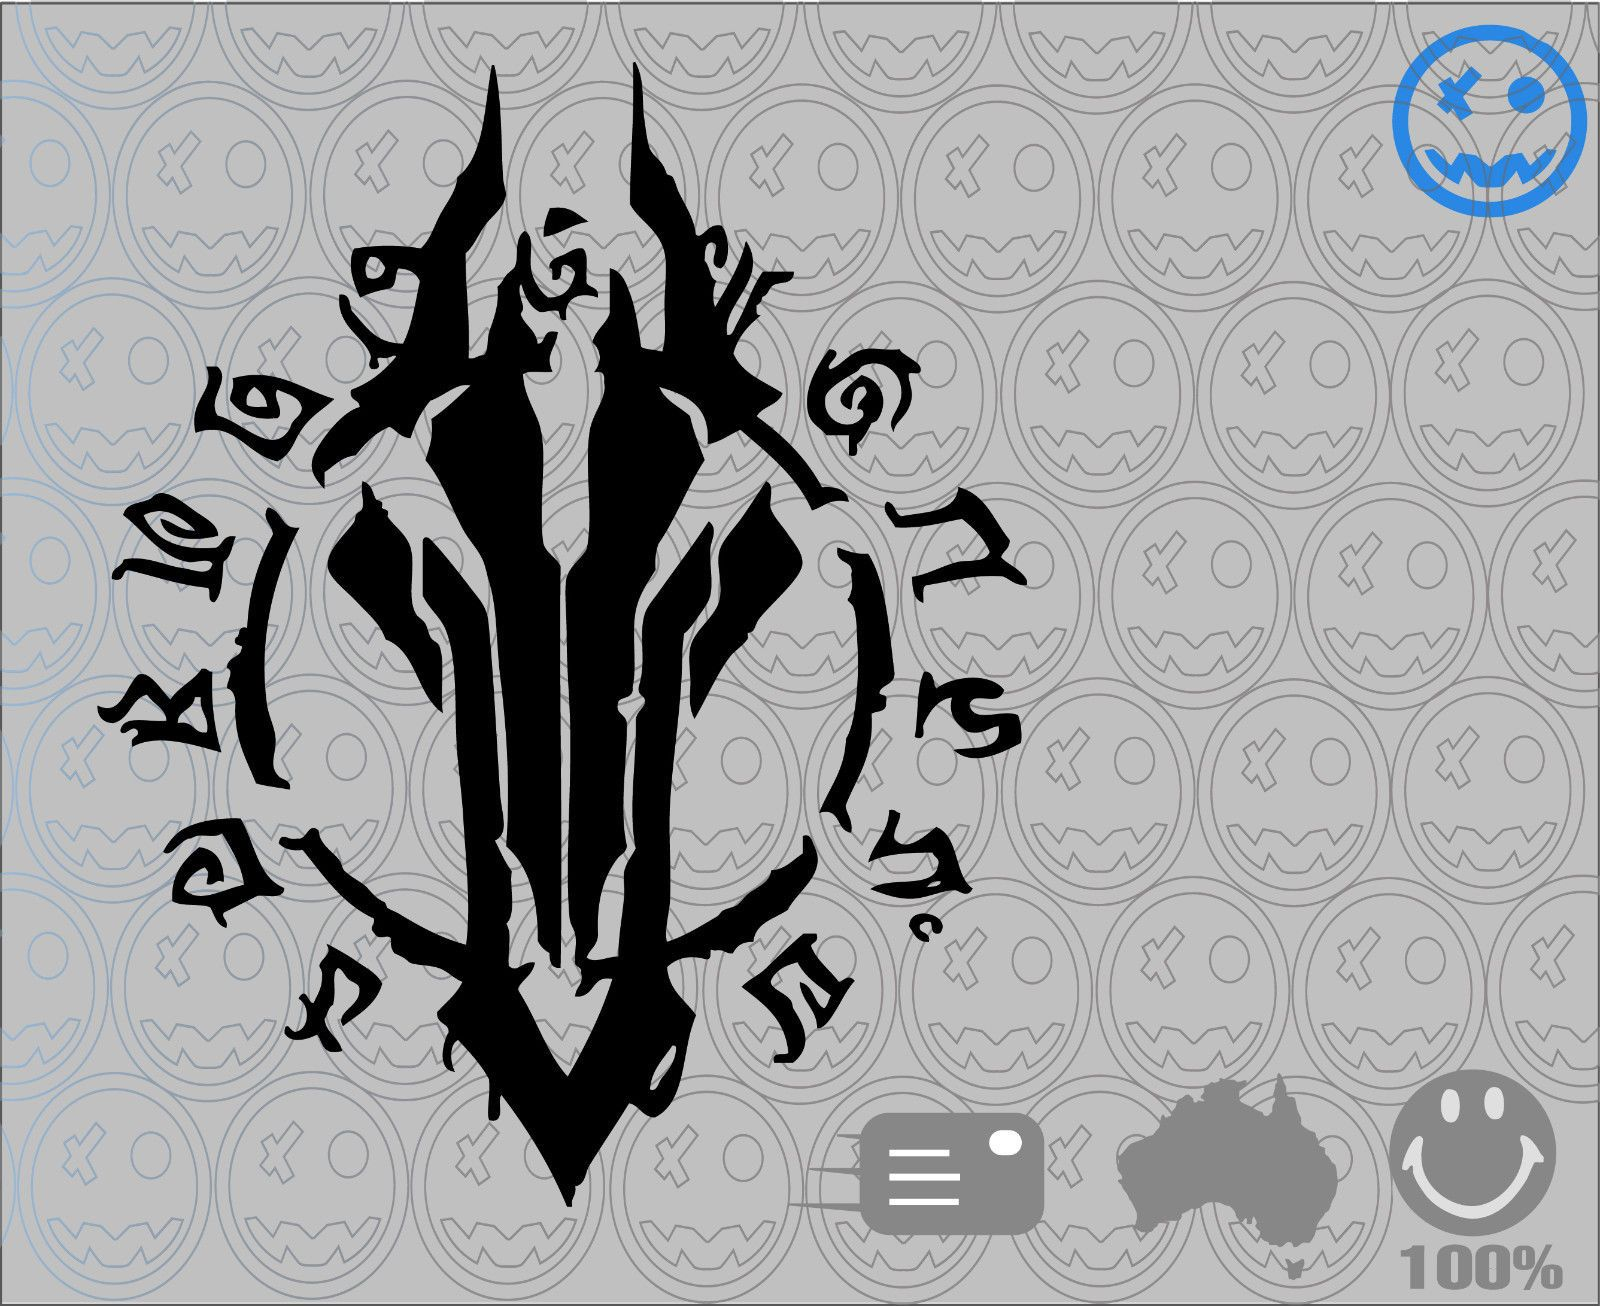 Details About Darksiders 2 Ii Sticker Decal 22cmh Black